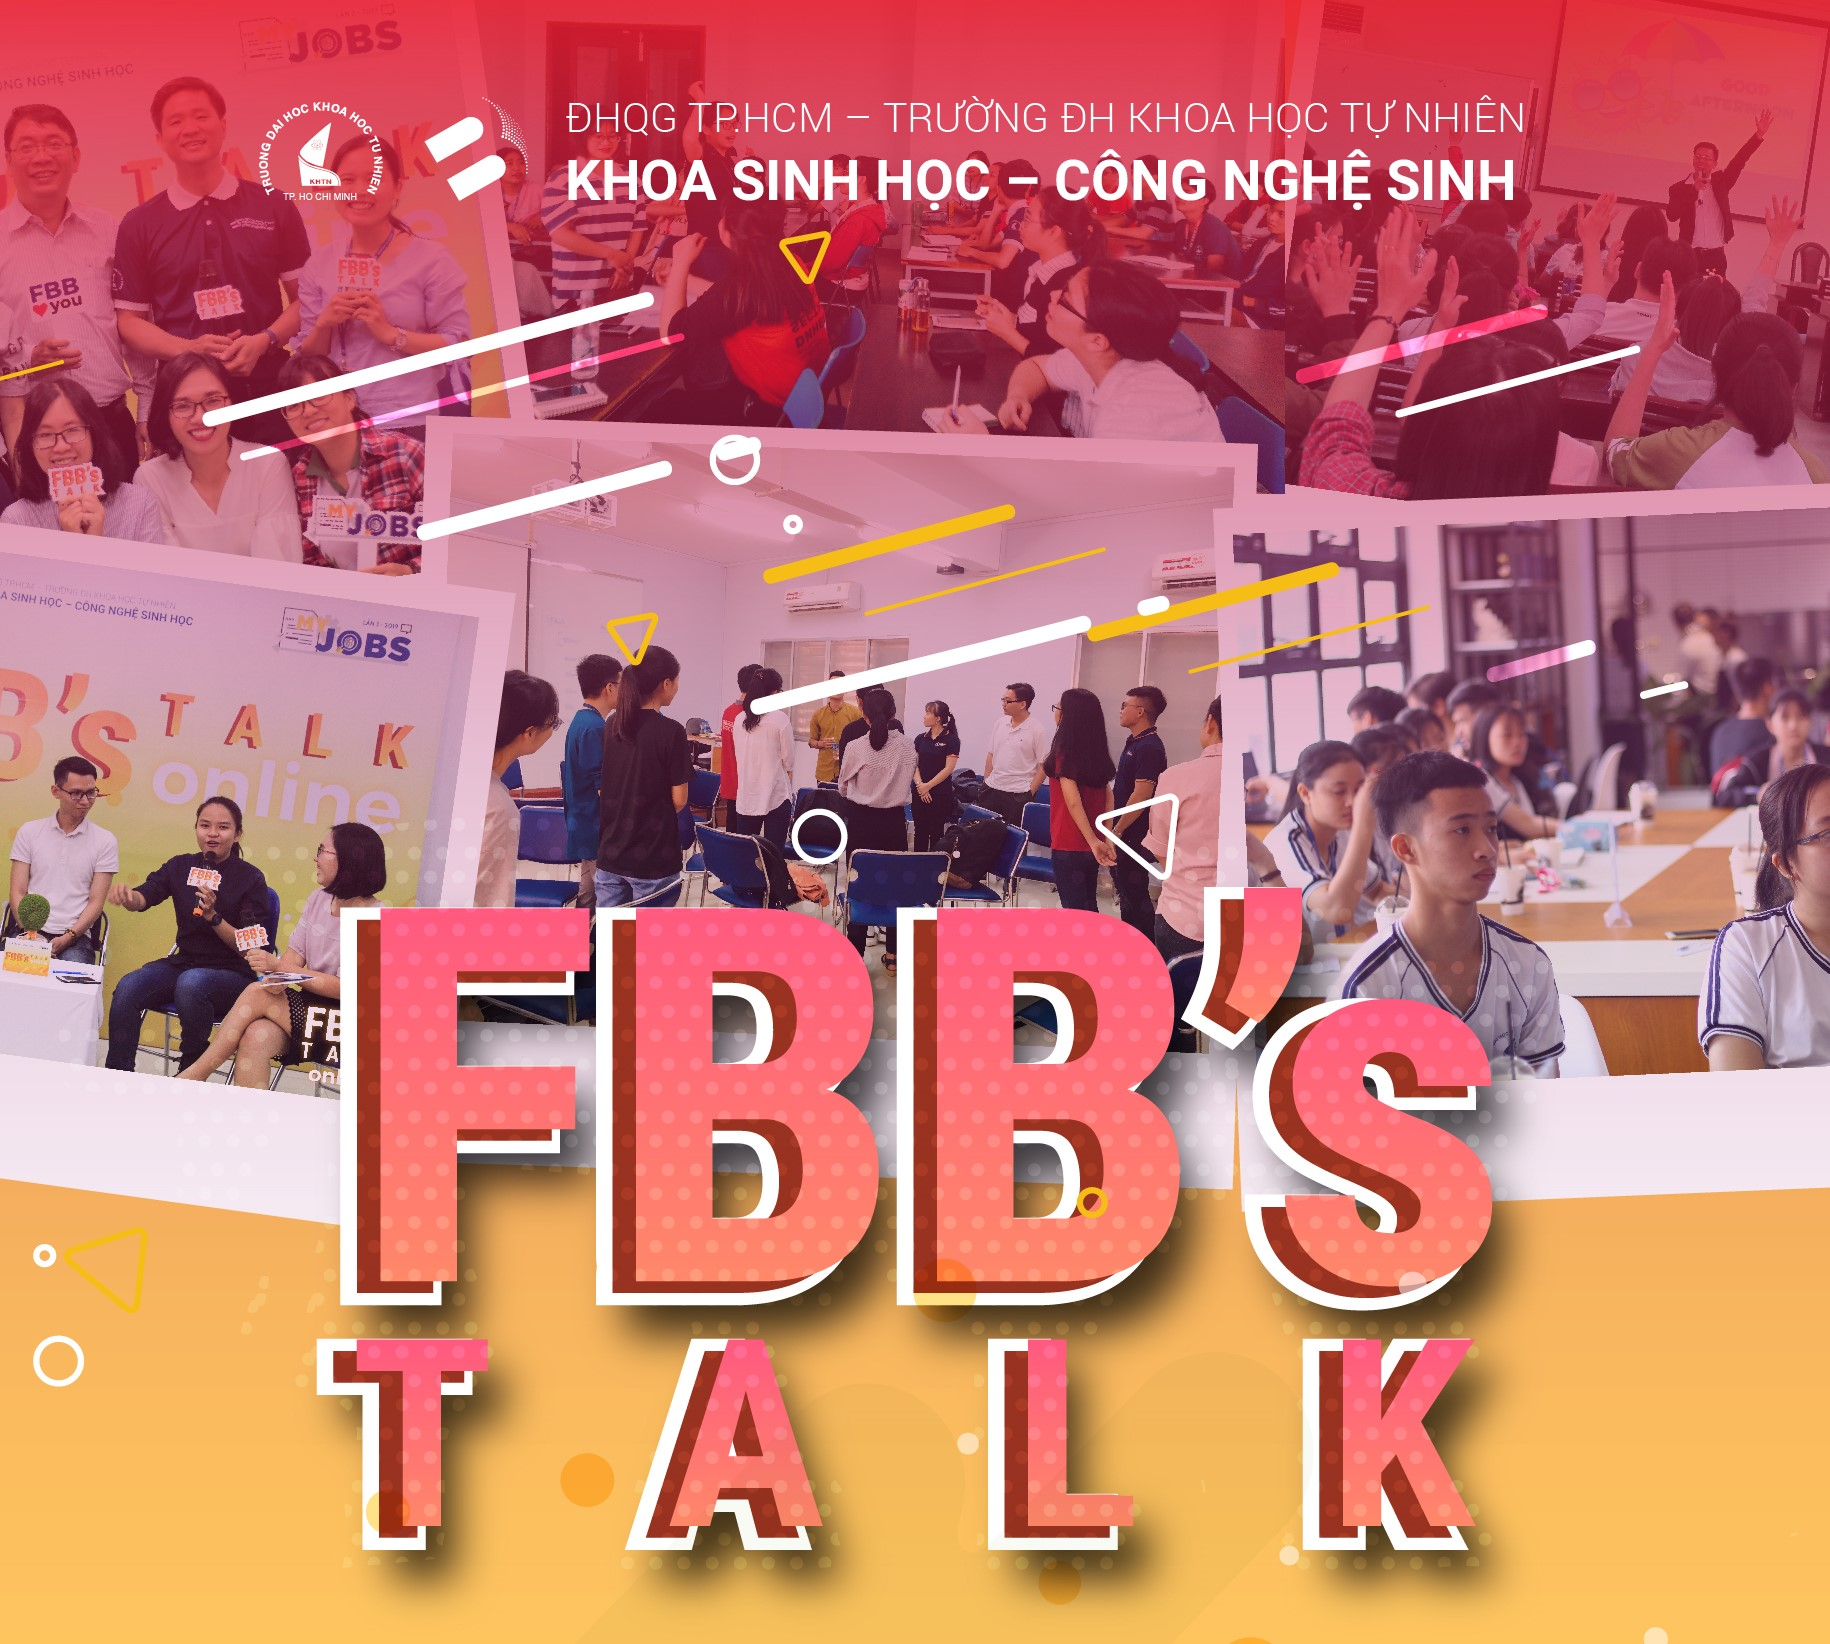 FBB's talk Global Citizen - From Local to Global